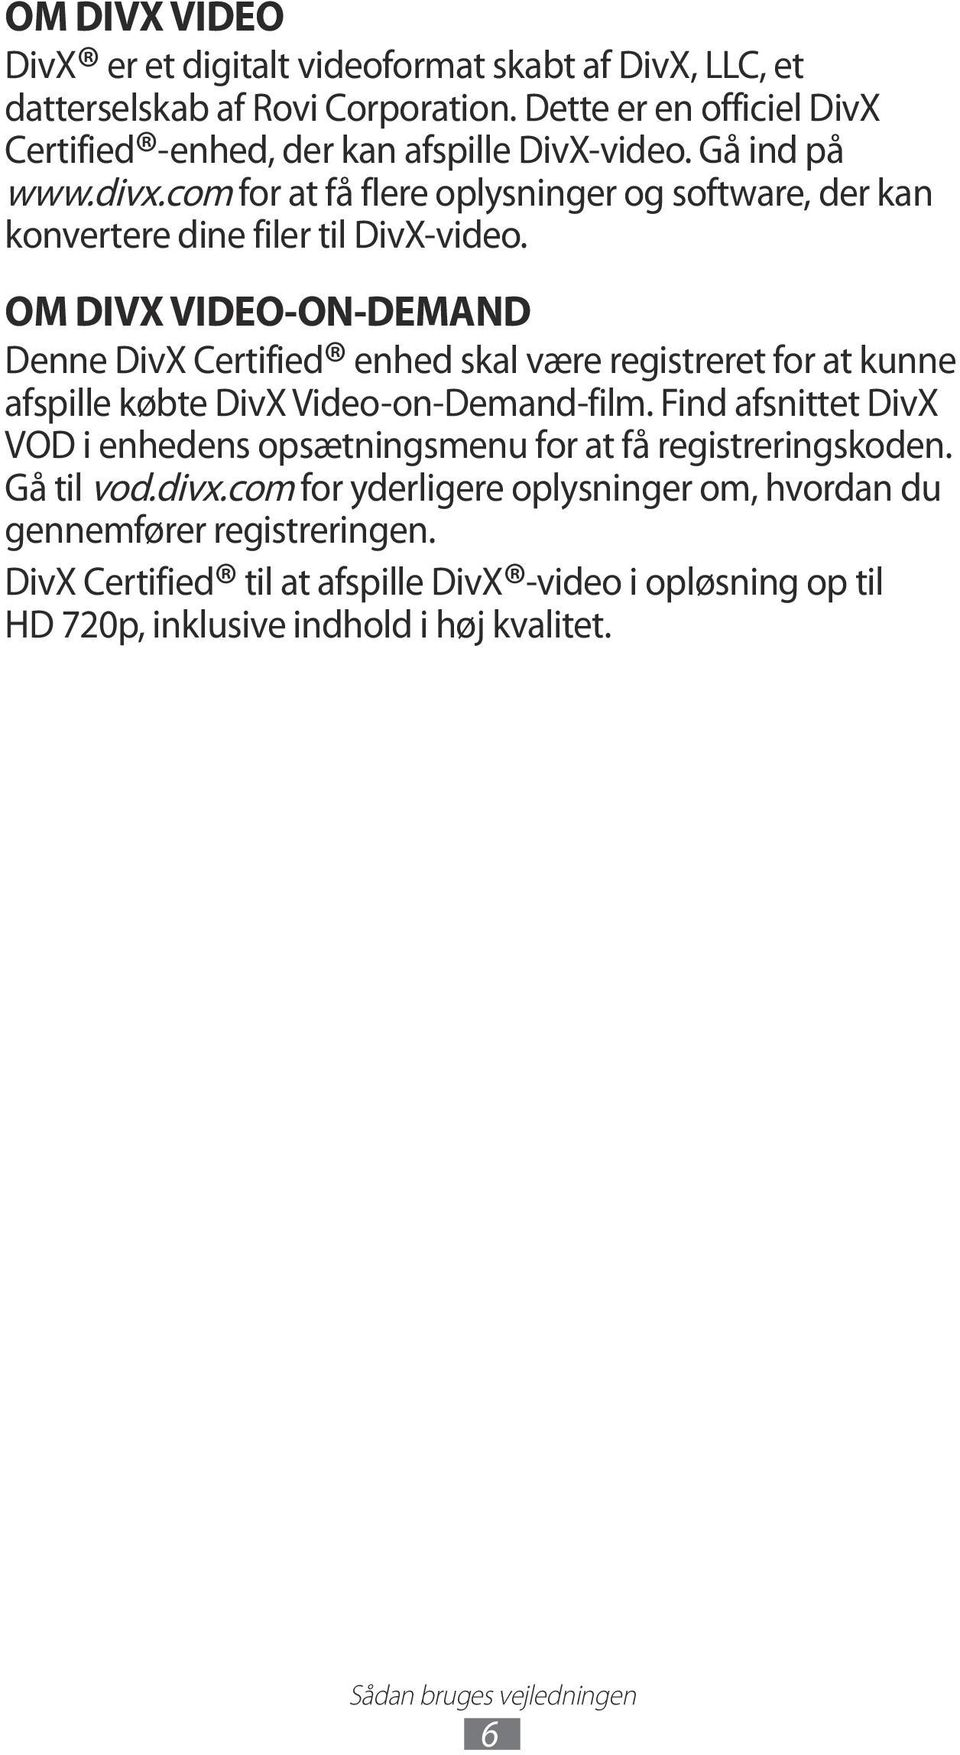 OM DIVX VIDEO-ON-DEMAND Denne DivX Certified enhed skal være registreret for at kunne afspille købte DivX Video-on-Demand-film.